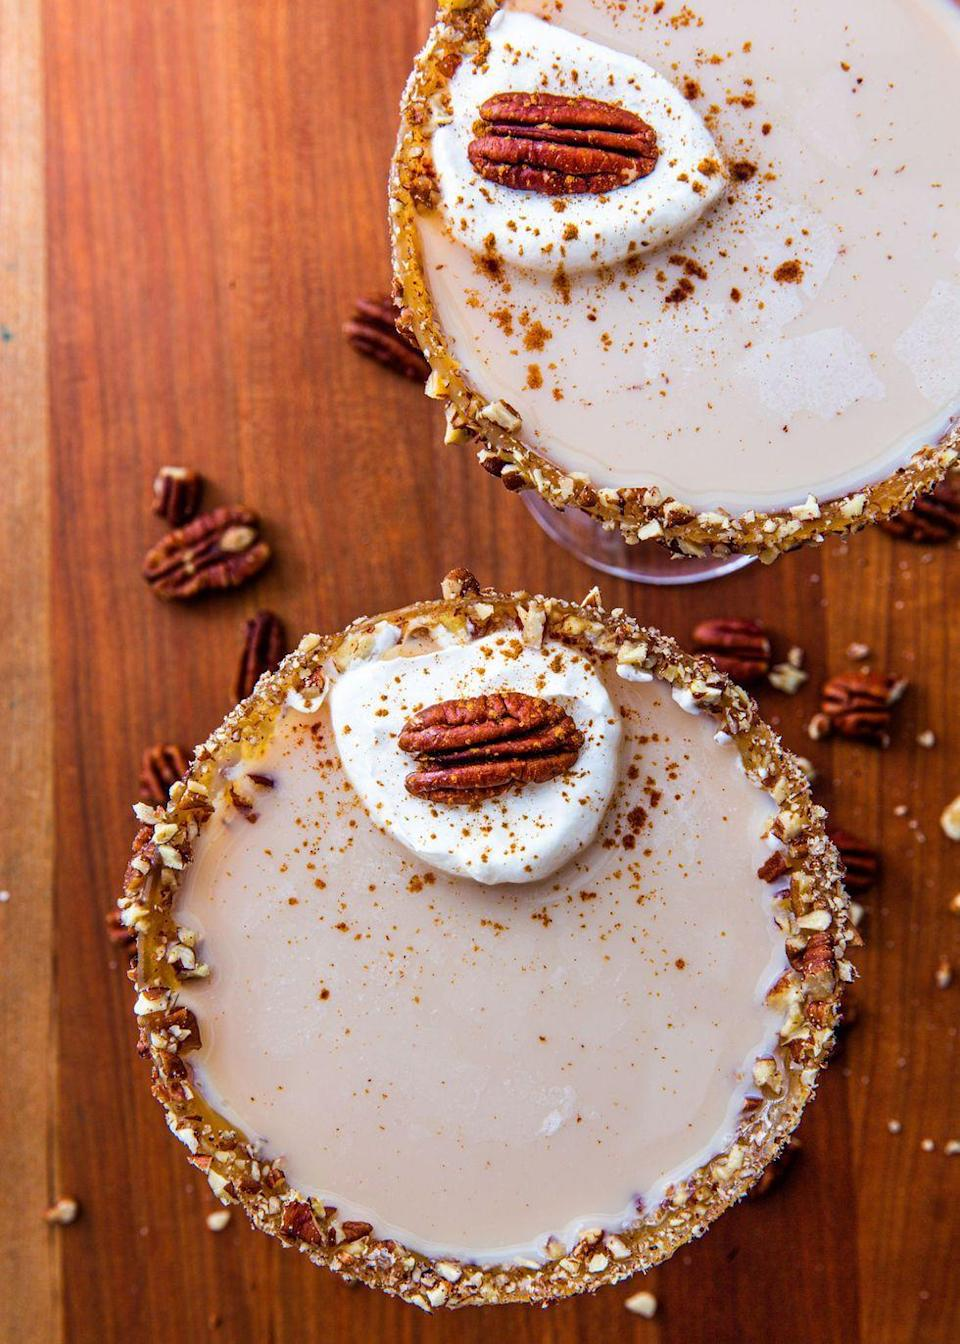 """<p>Skip the dessert table and finish off your meal with this sweet and boozy treat. </p><p><em><a href=""""https://www.delish.com/cooking/recipe-ideas/a24132507/pecan-pie-martini-recipe/"""" rel=""""nofollow noopener"""" target=""""_blank"""" data-ylk=""""slk:Get the recipe at Delish"""" class=""""link rapid-noclick-resp"""">Get the recipe at Delish</a></em></p>"""